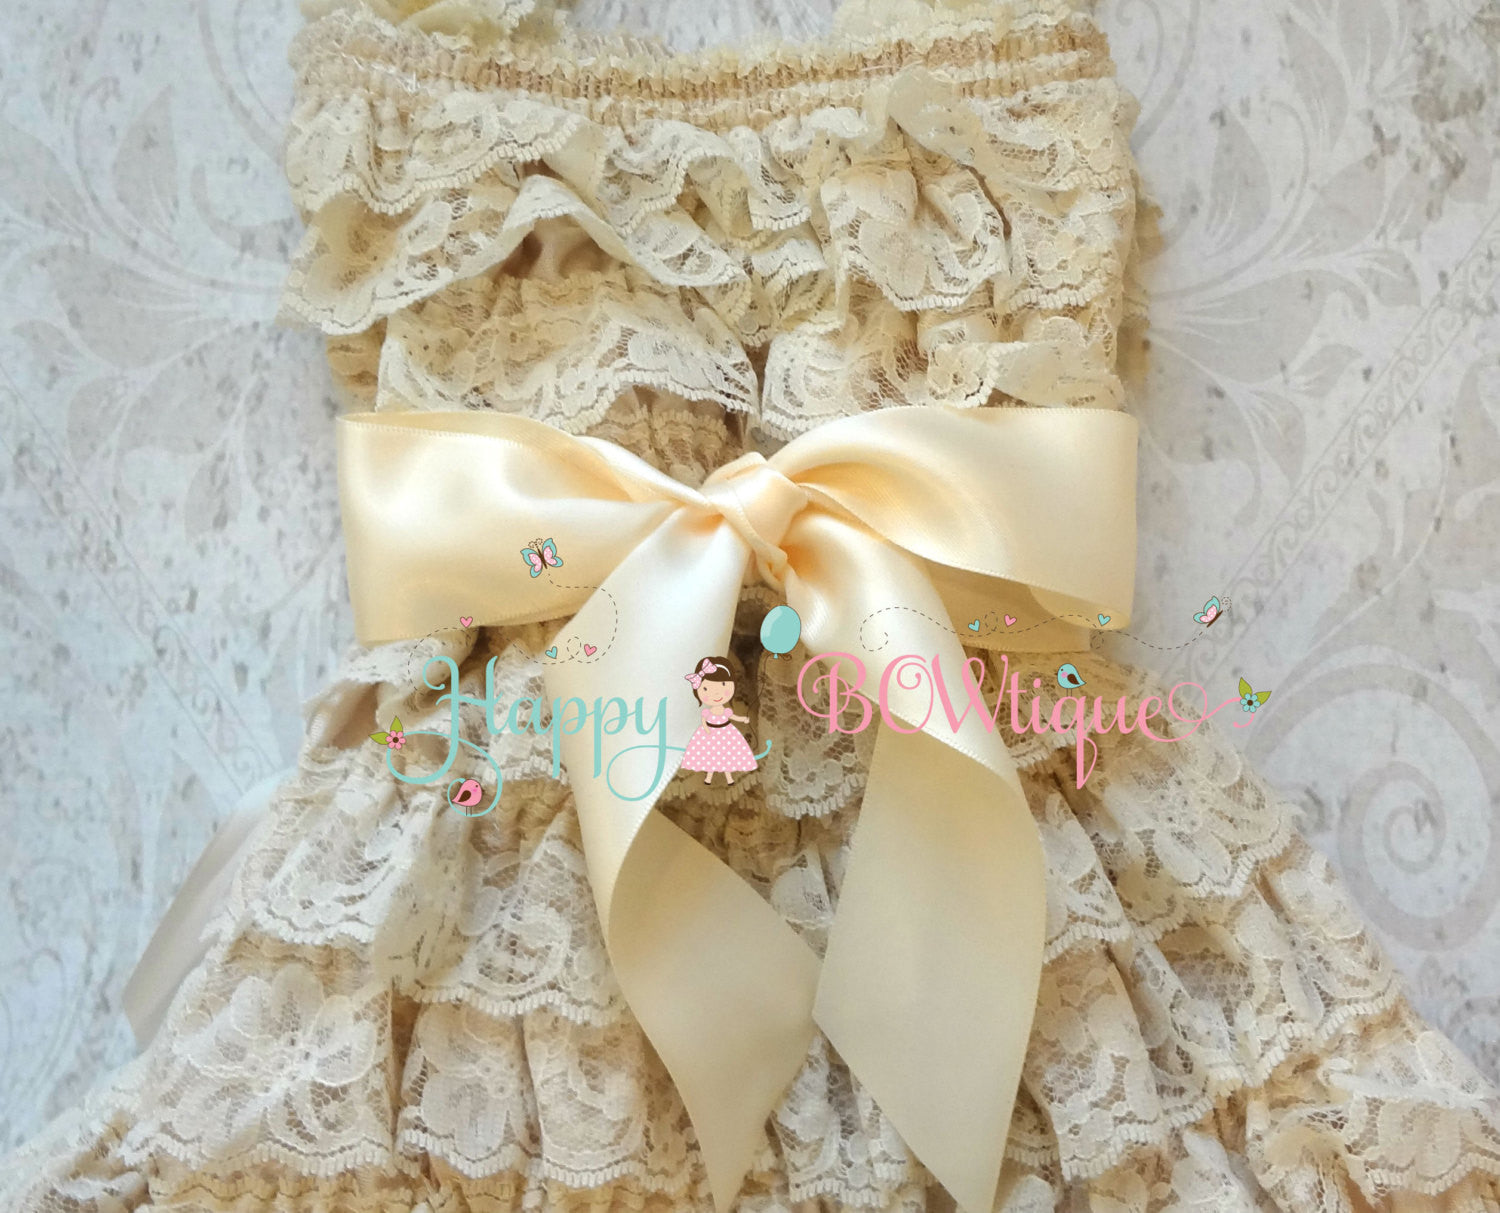 Blush Champagne Bow Lace Dress - Happy BOWtique - children's clothing, Baby Girl clothing